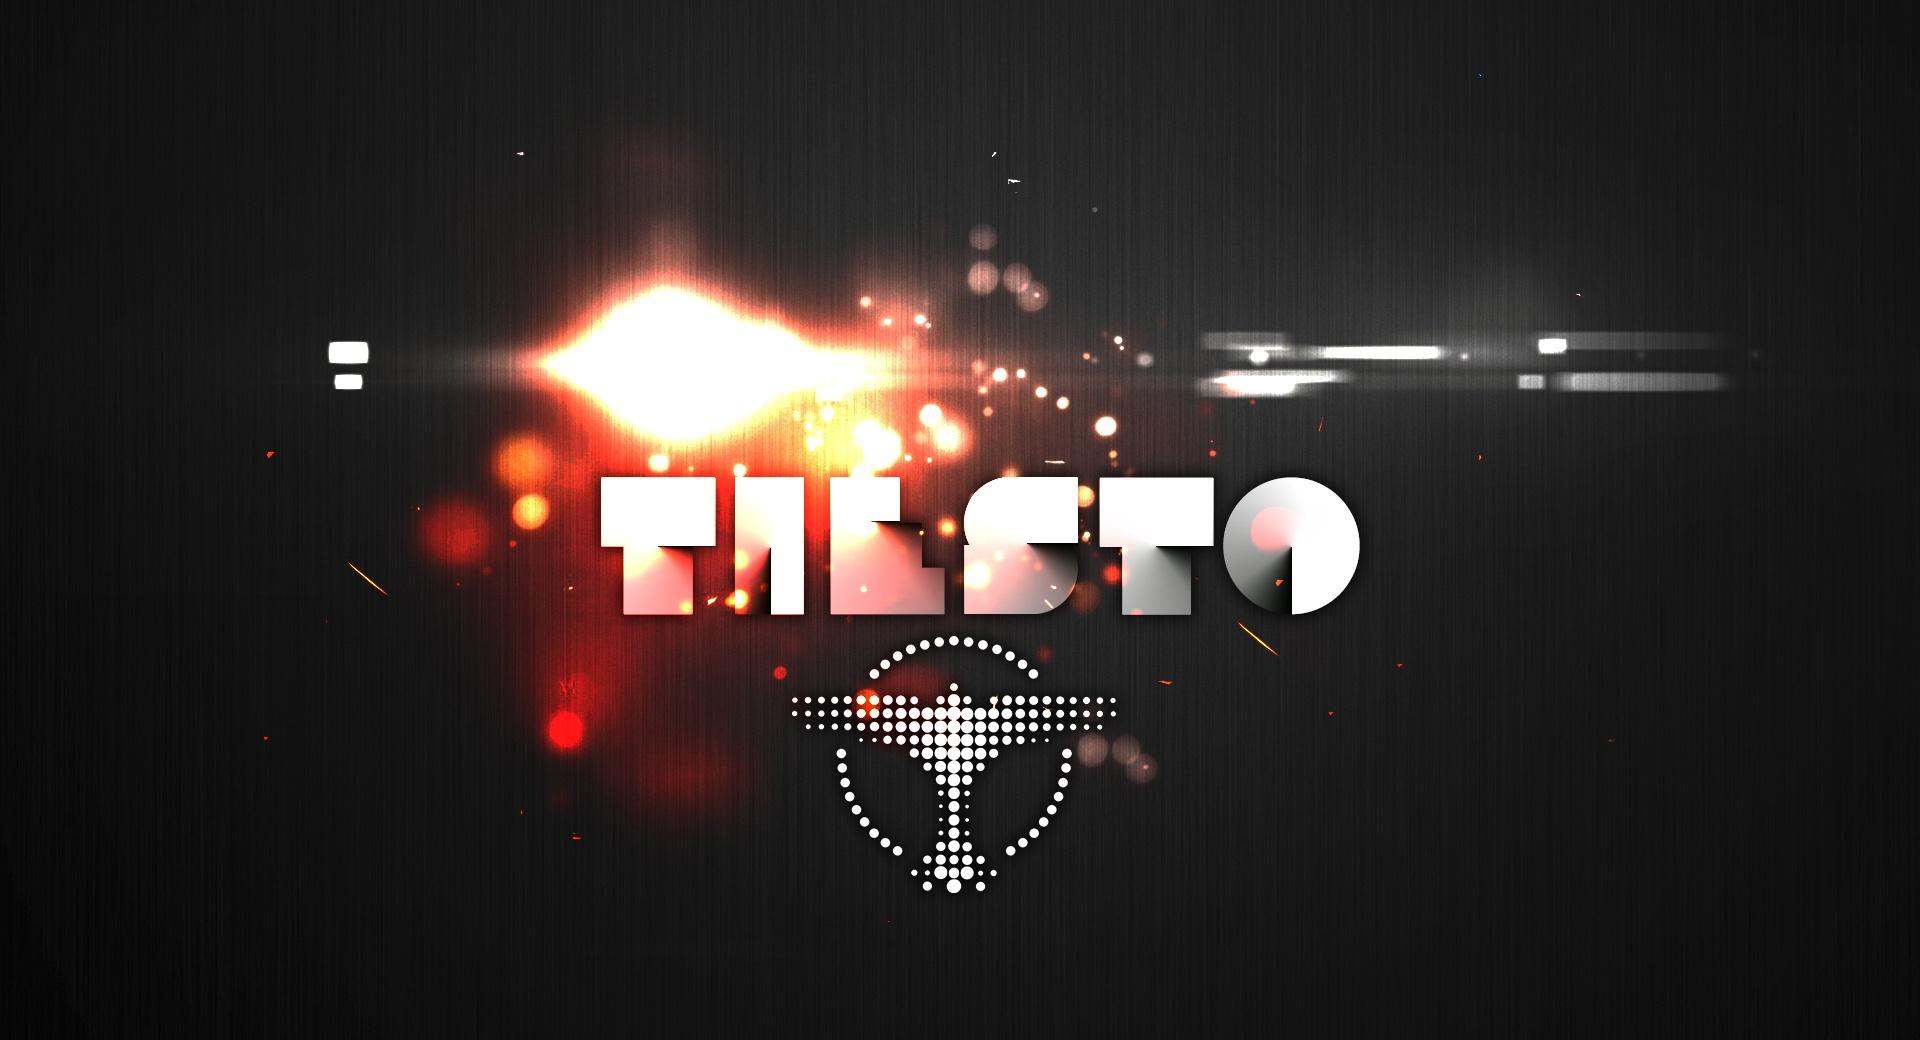 Tiesto Explosion wallpapers HD quality